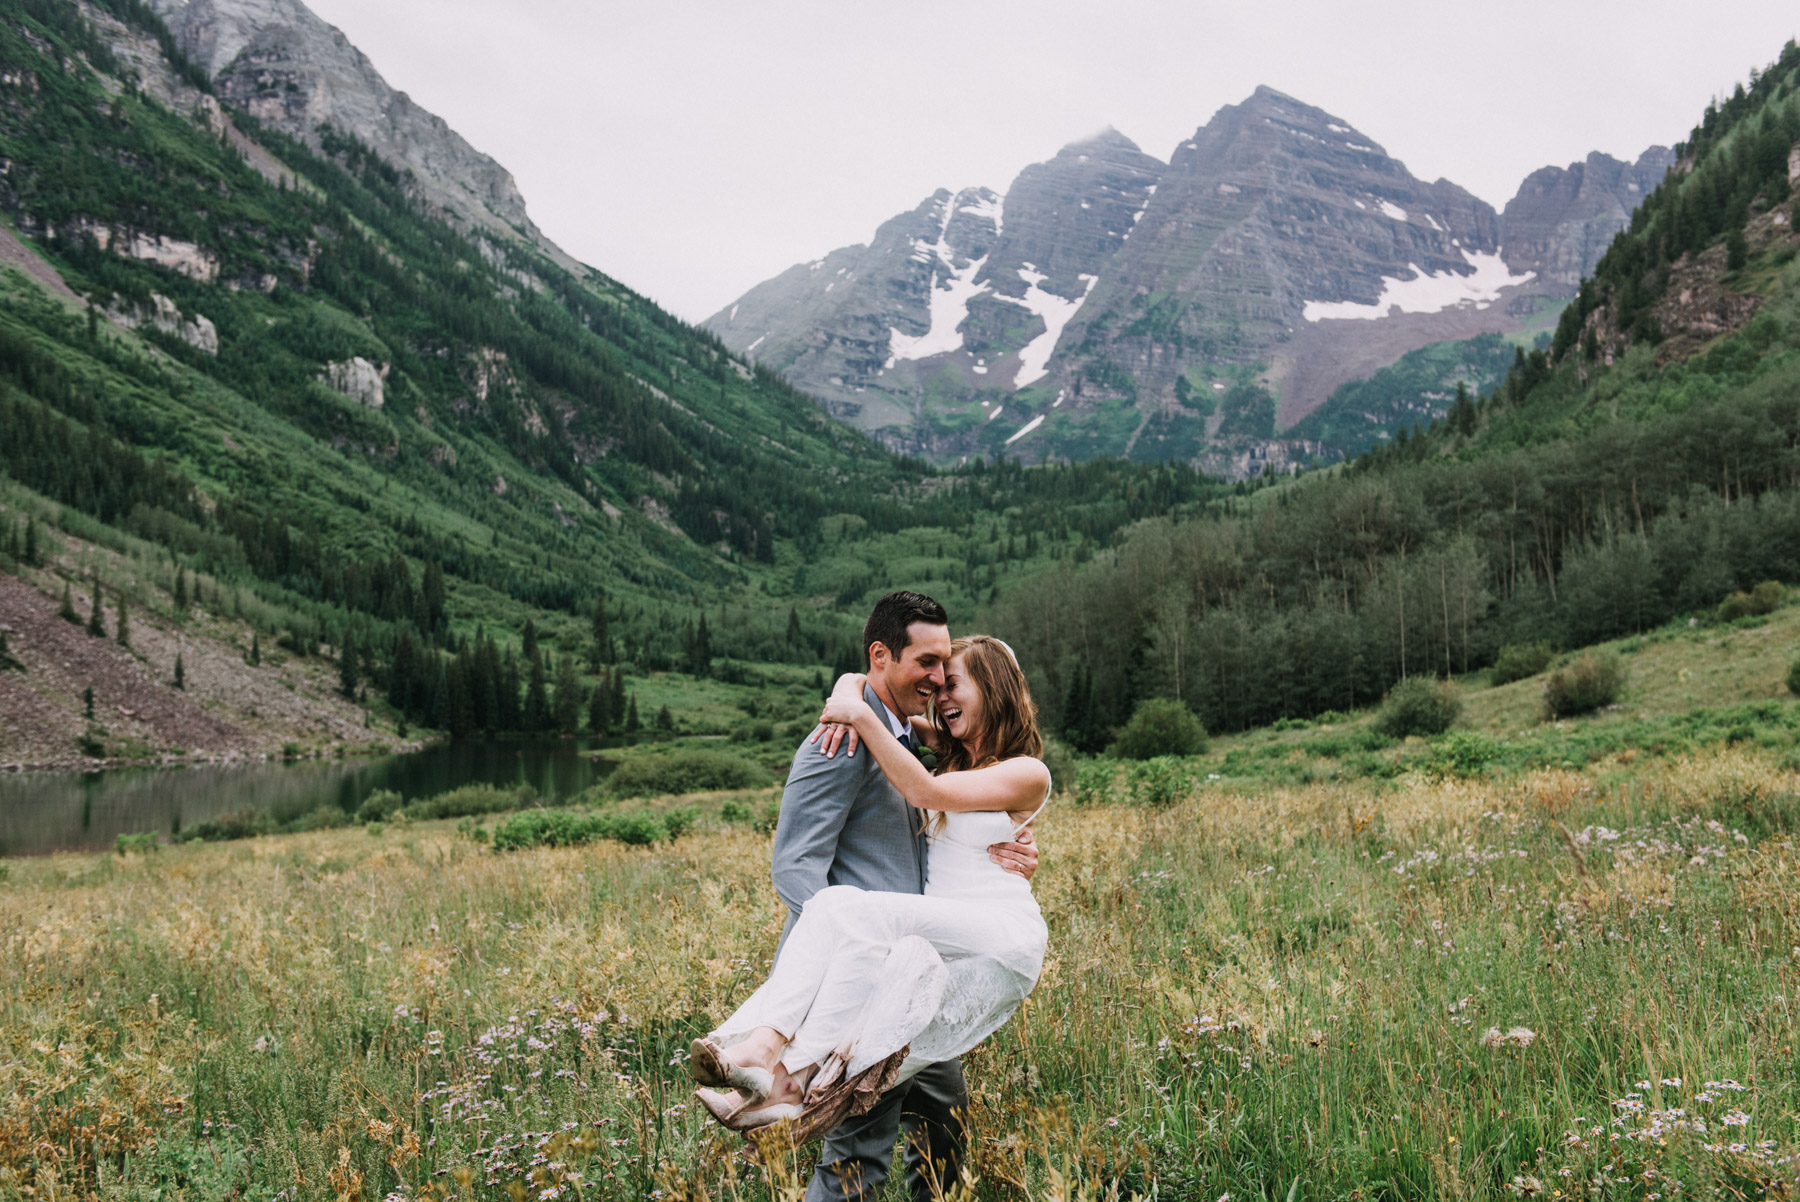 Heather and Darron were all about hiking through the mud after their Maroon Bells elopement ceremony. They decided against the big wedding and felt it was more them to have a let's elope to Aspen kind of wedding. They stood in front of the Maroon Bells while they said I do. Here they are laughing during their mountain bride and groom portraits. The Maroon Bells is definitely one of my favorite destination elopement spots!